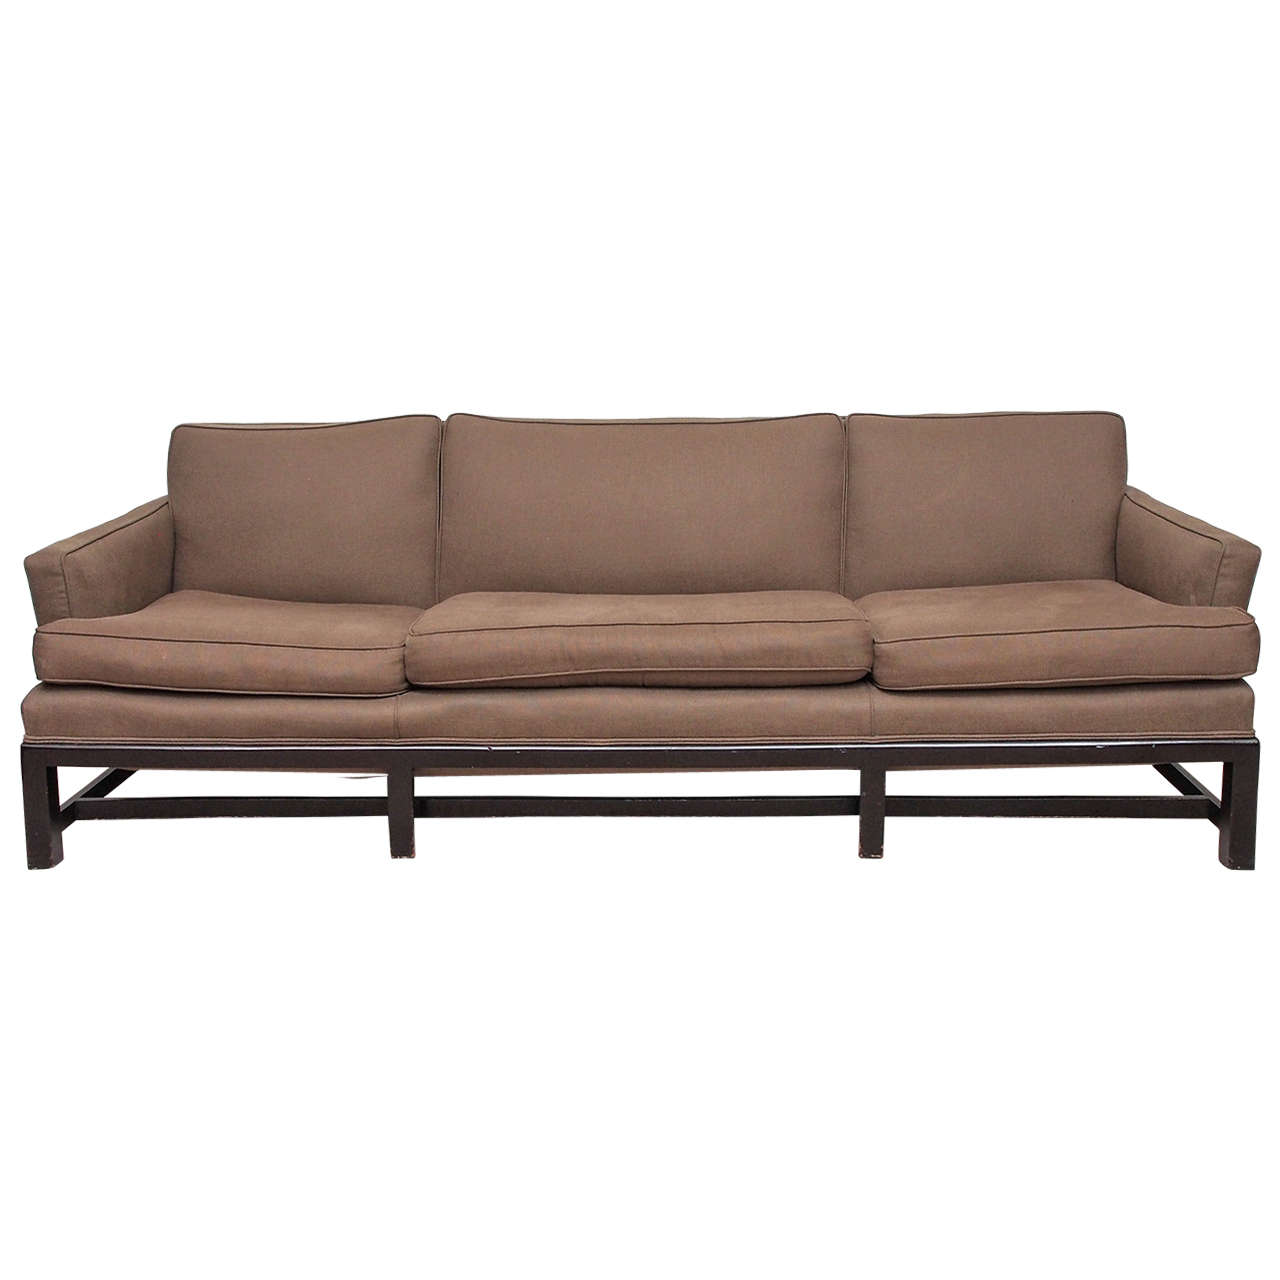 Saturday sale mid modern sofa with curved back at 1stdibs for I contemporary furniture